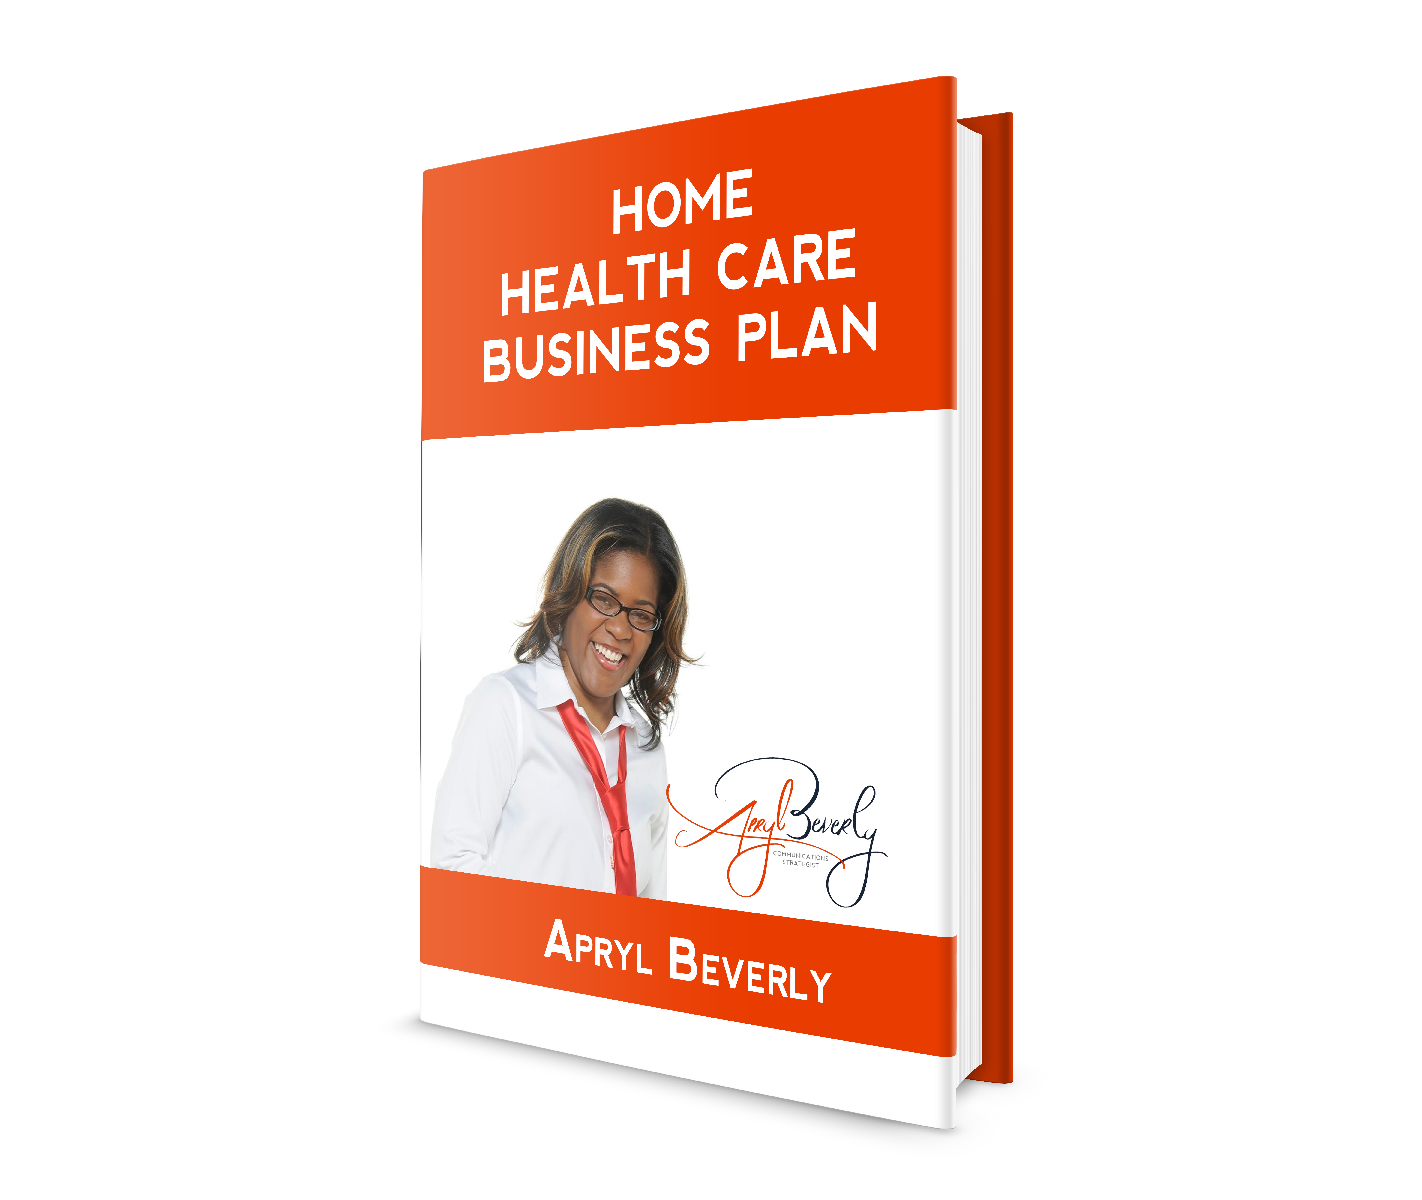 Home Health Care Business Plan The Copycloset